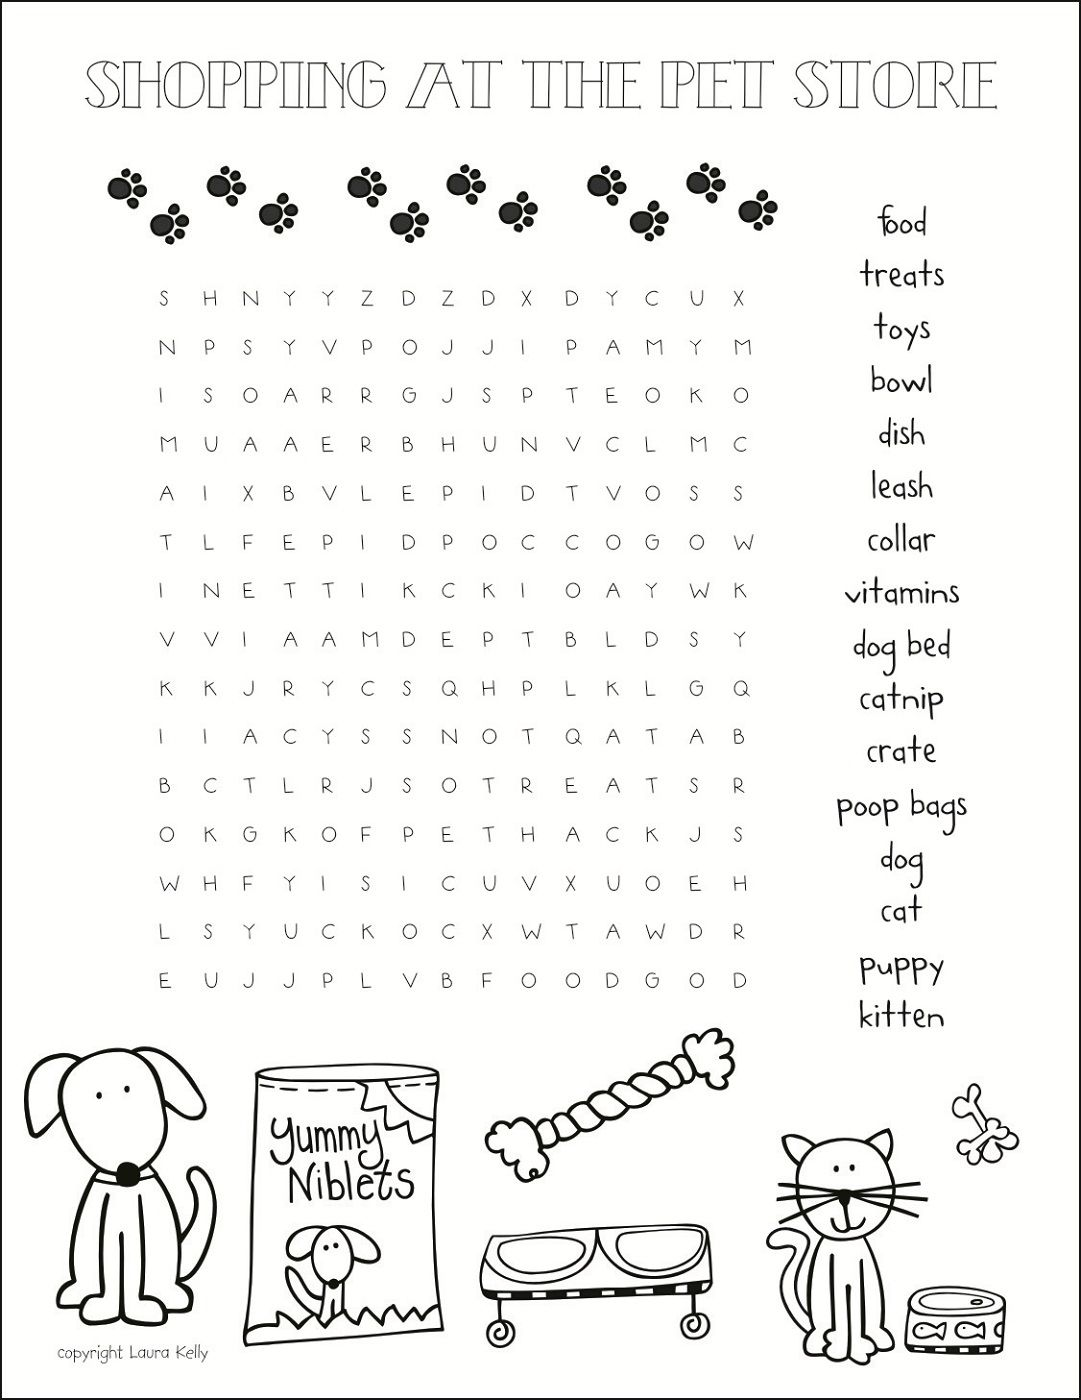 Pet Store Word Search For Animal Lovers